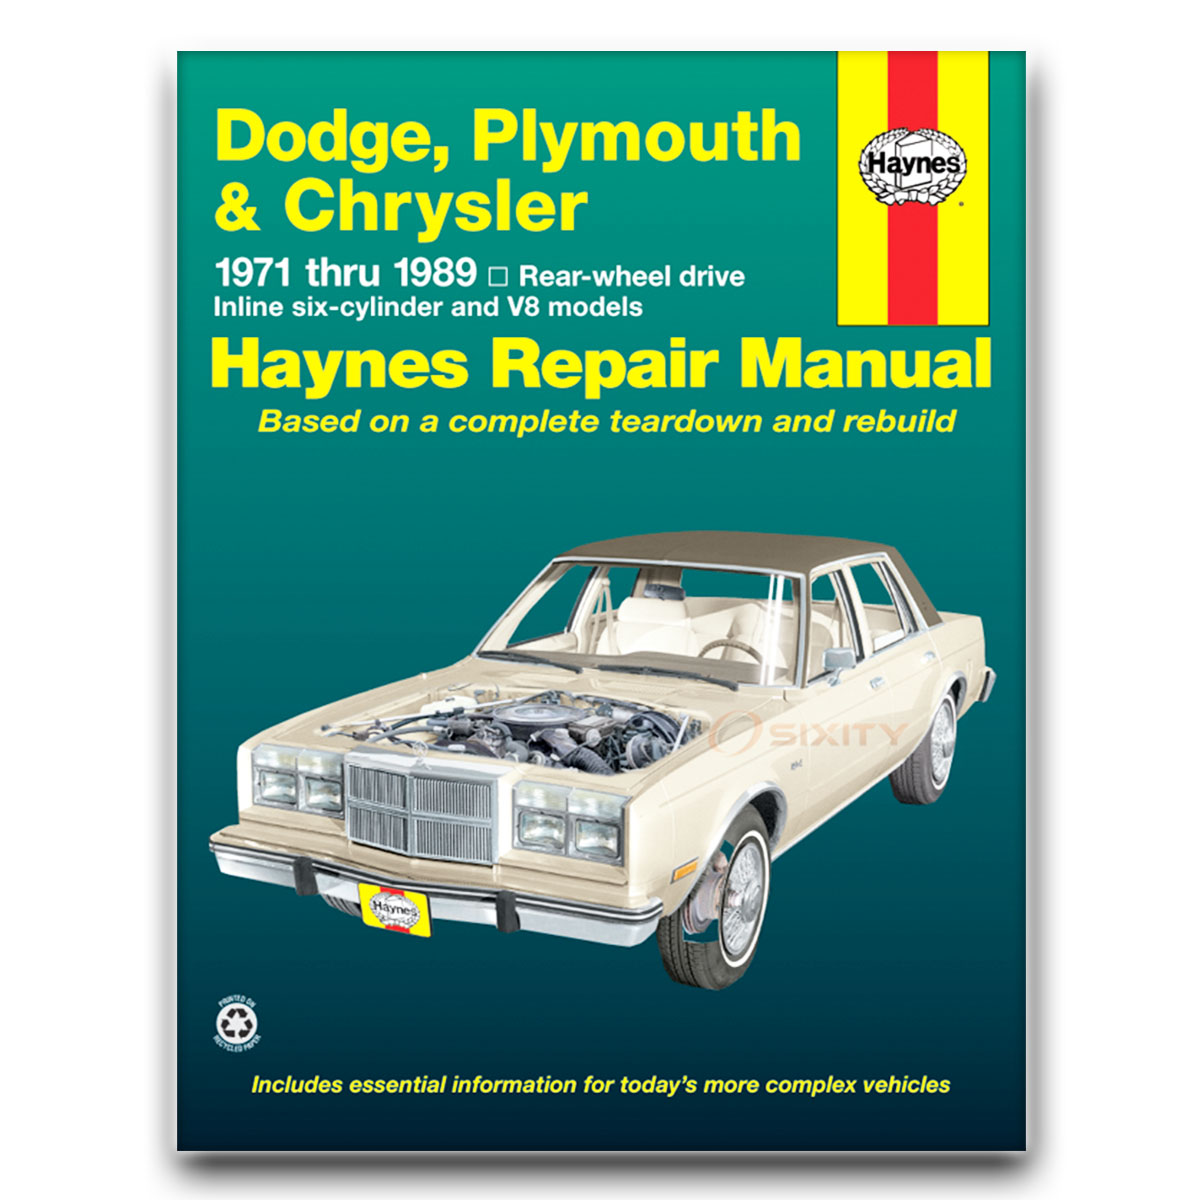 haynes repair manual for dodge magnum xe shop service garage book xu rh ebay com Dodge Service Manuals Dodge Magnum Manual Transmission